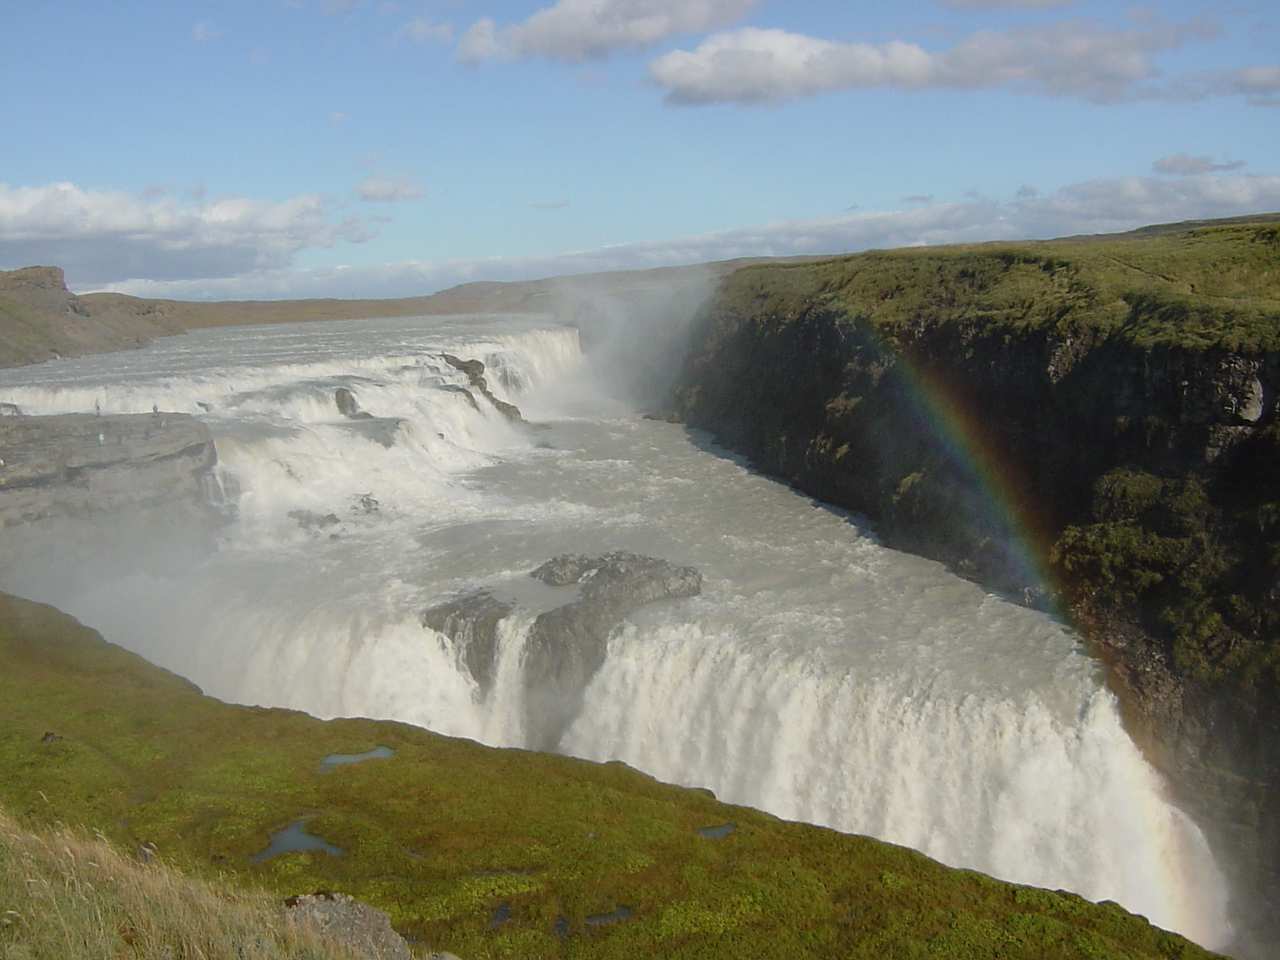 At times you can see 3 or more rainbows at the same time above these falls!